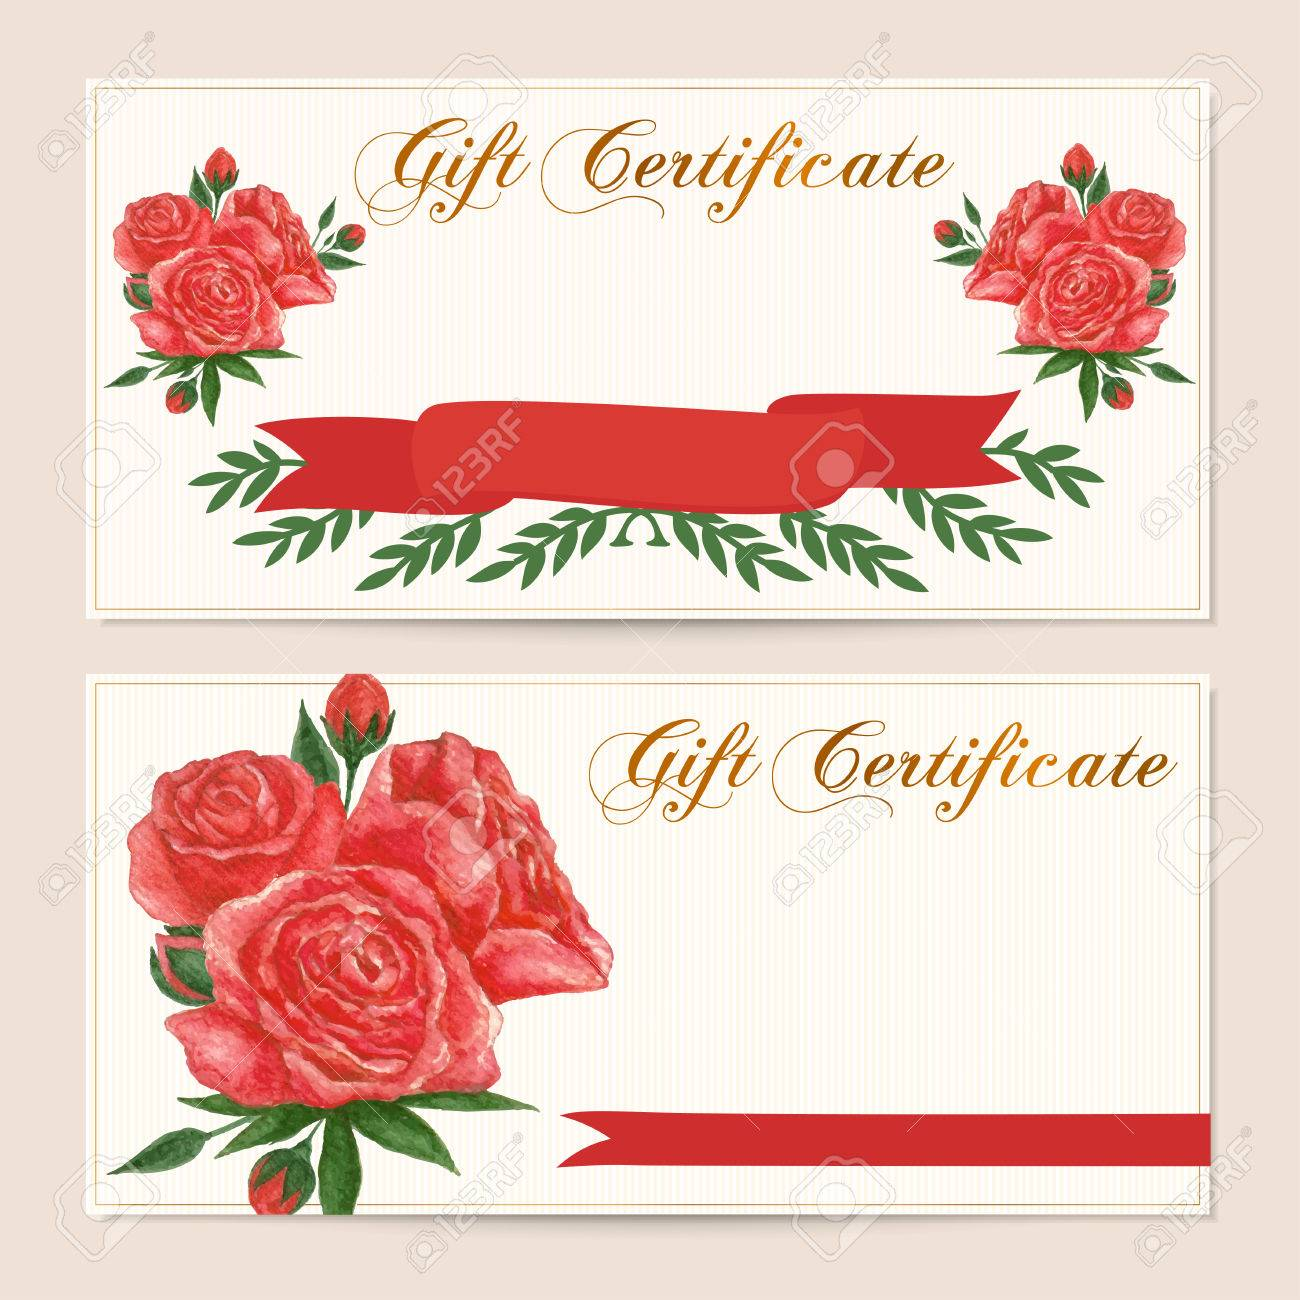 Magnificent christmas gift certificates template photos 100 romantic gift certificate template 11 best creyate gift yadclub Image collections